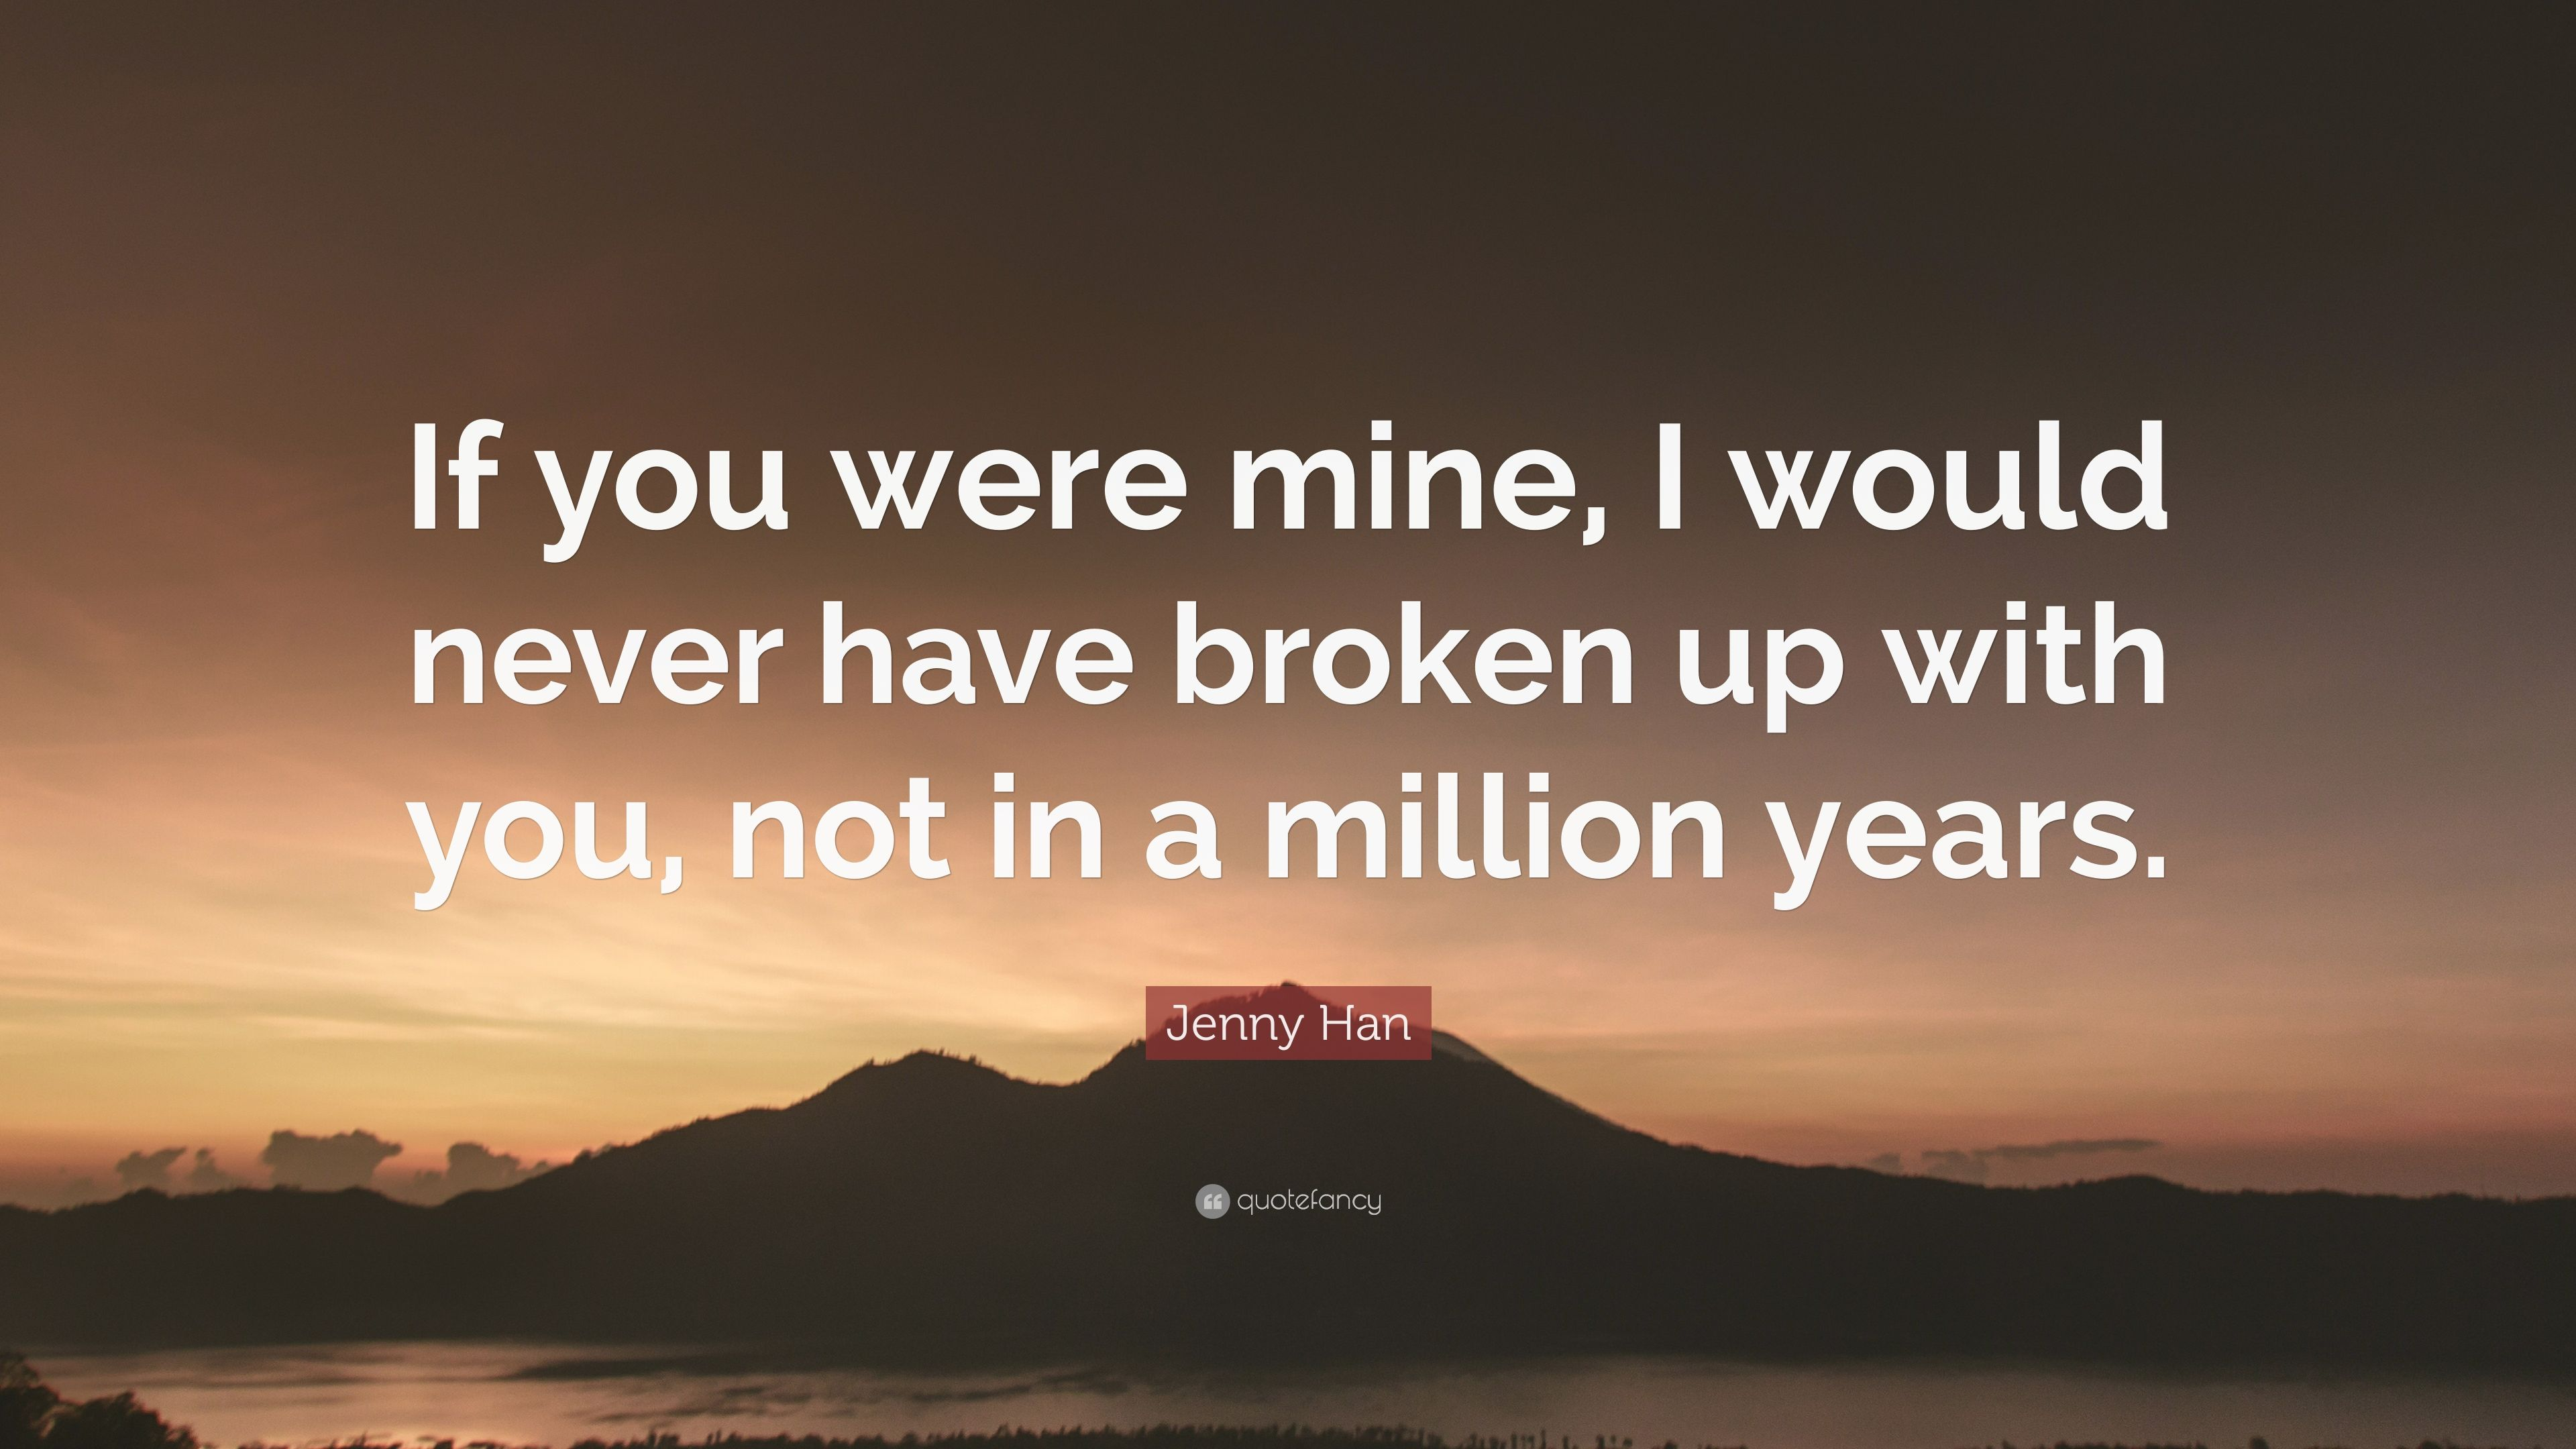 Jenny Han Quote: If you were mine, I would never have